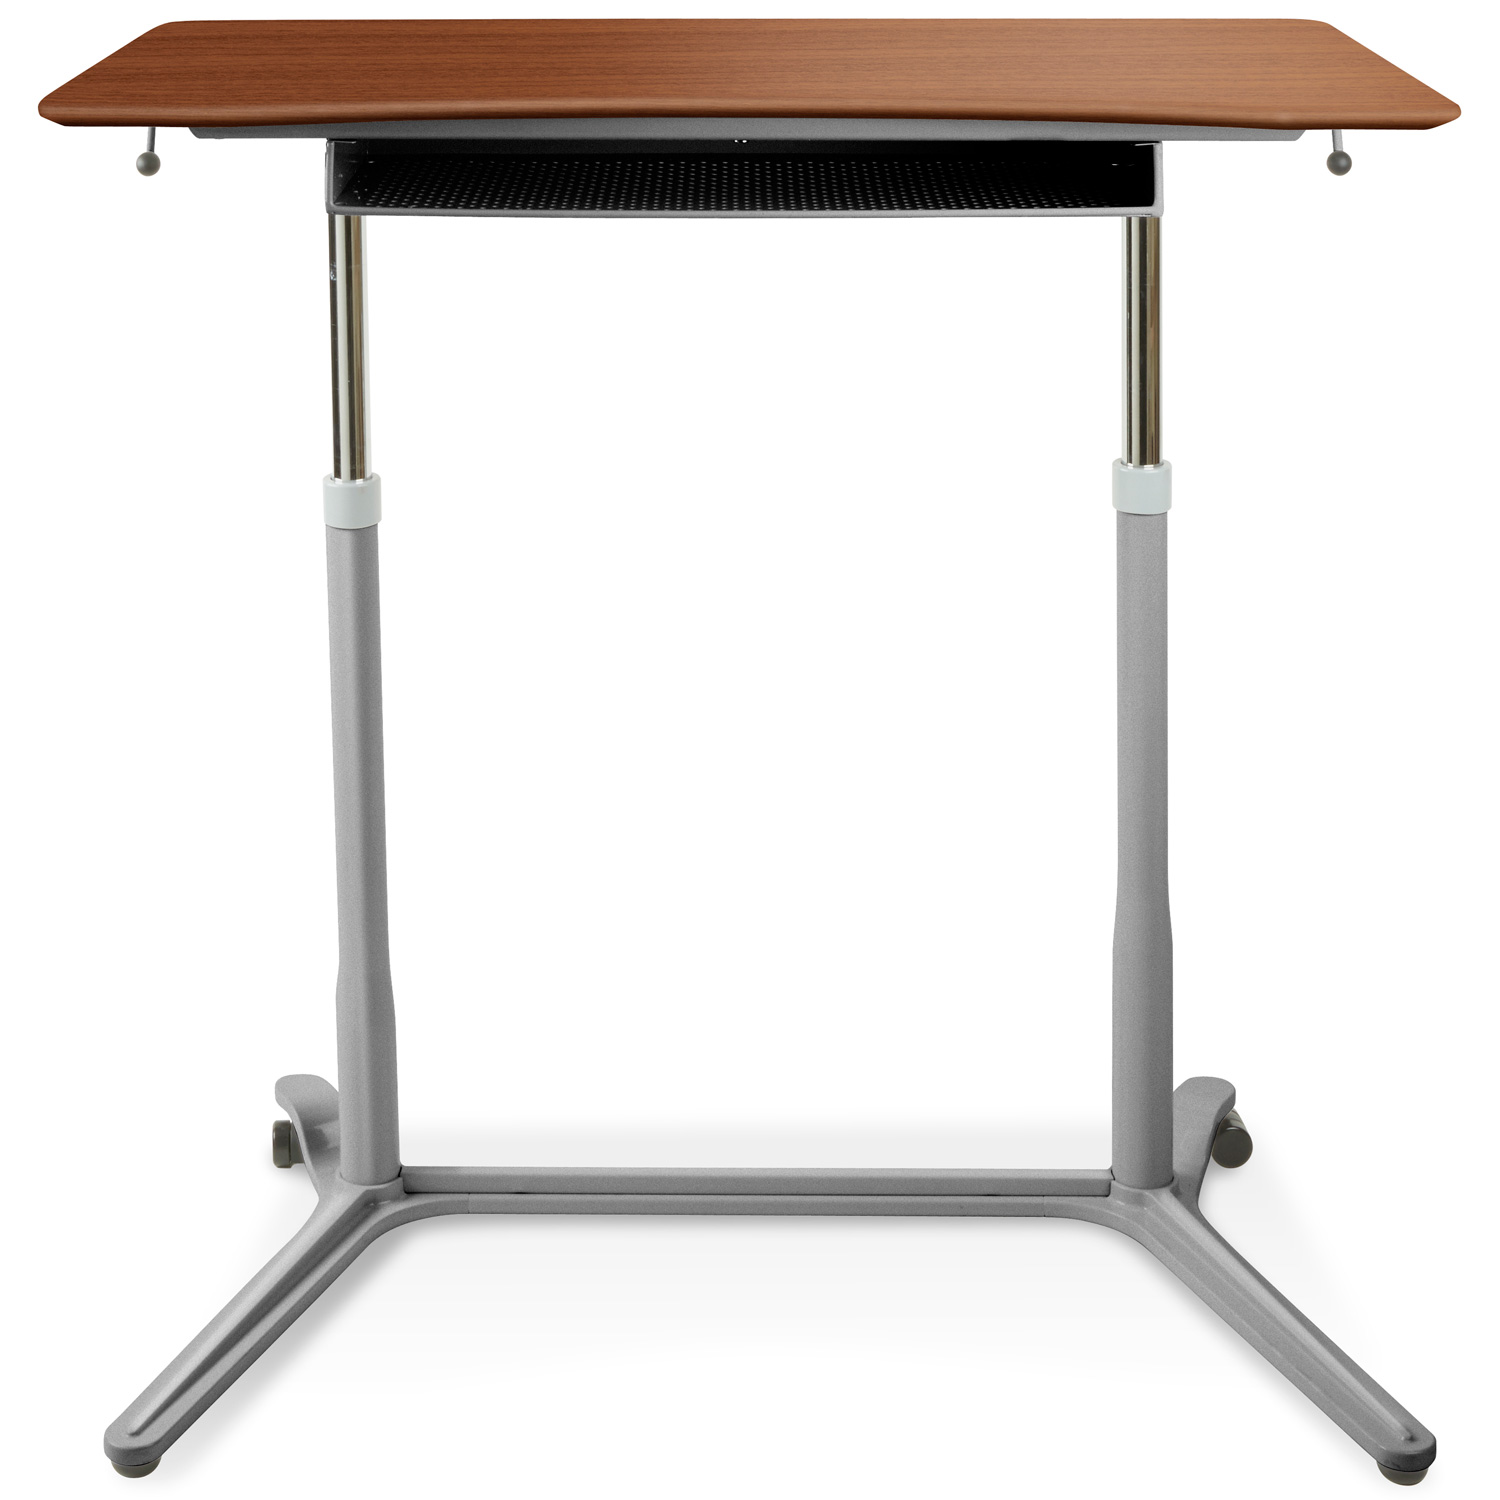 Mobile Sit & Stand Desk - Adjustable Height, Cherry